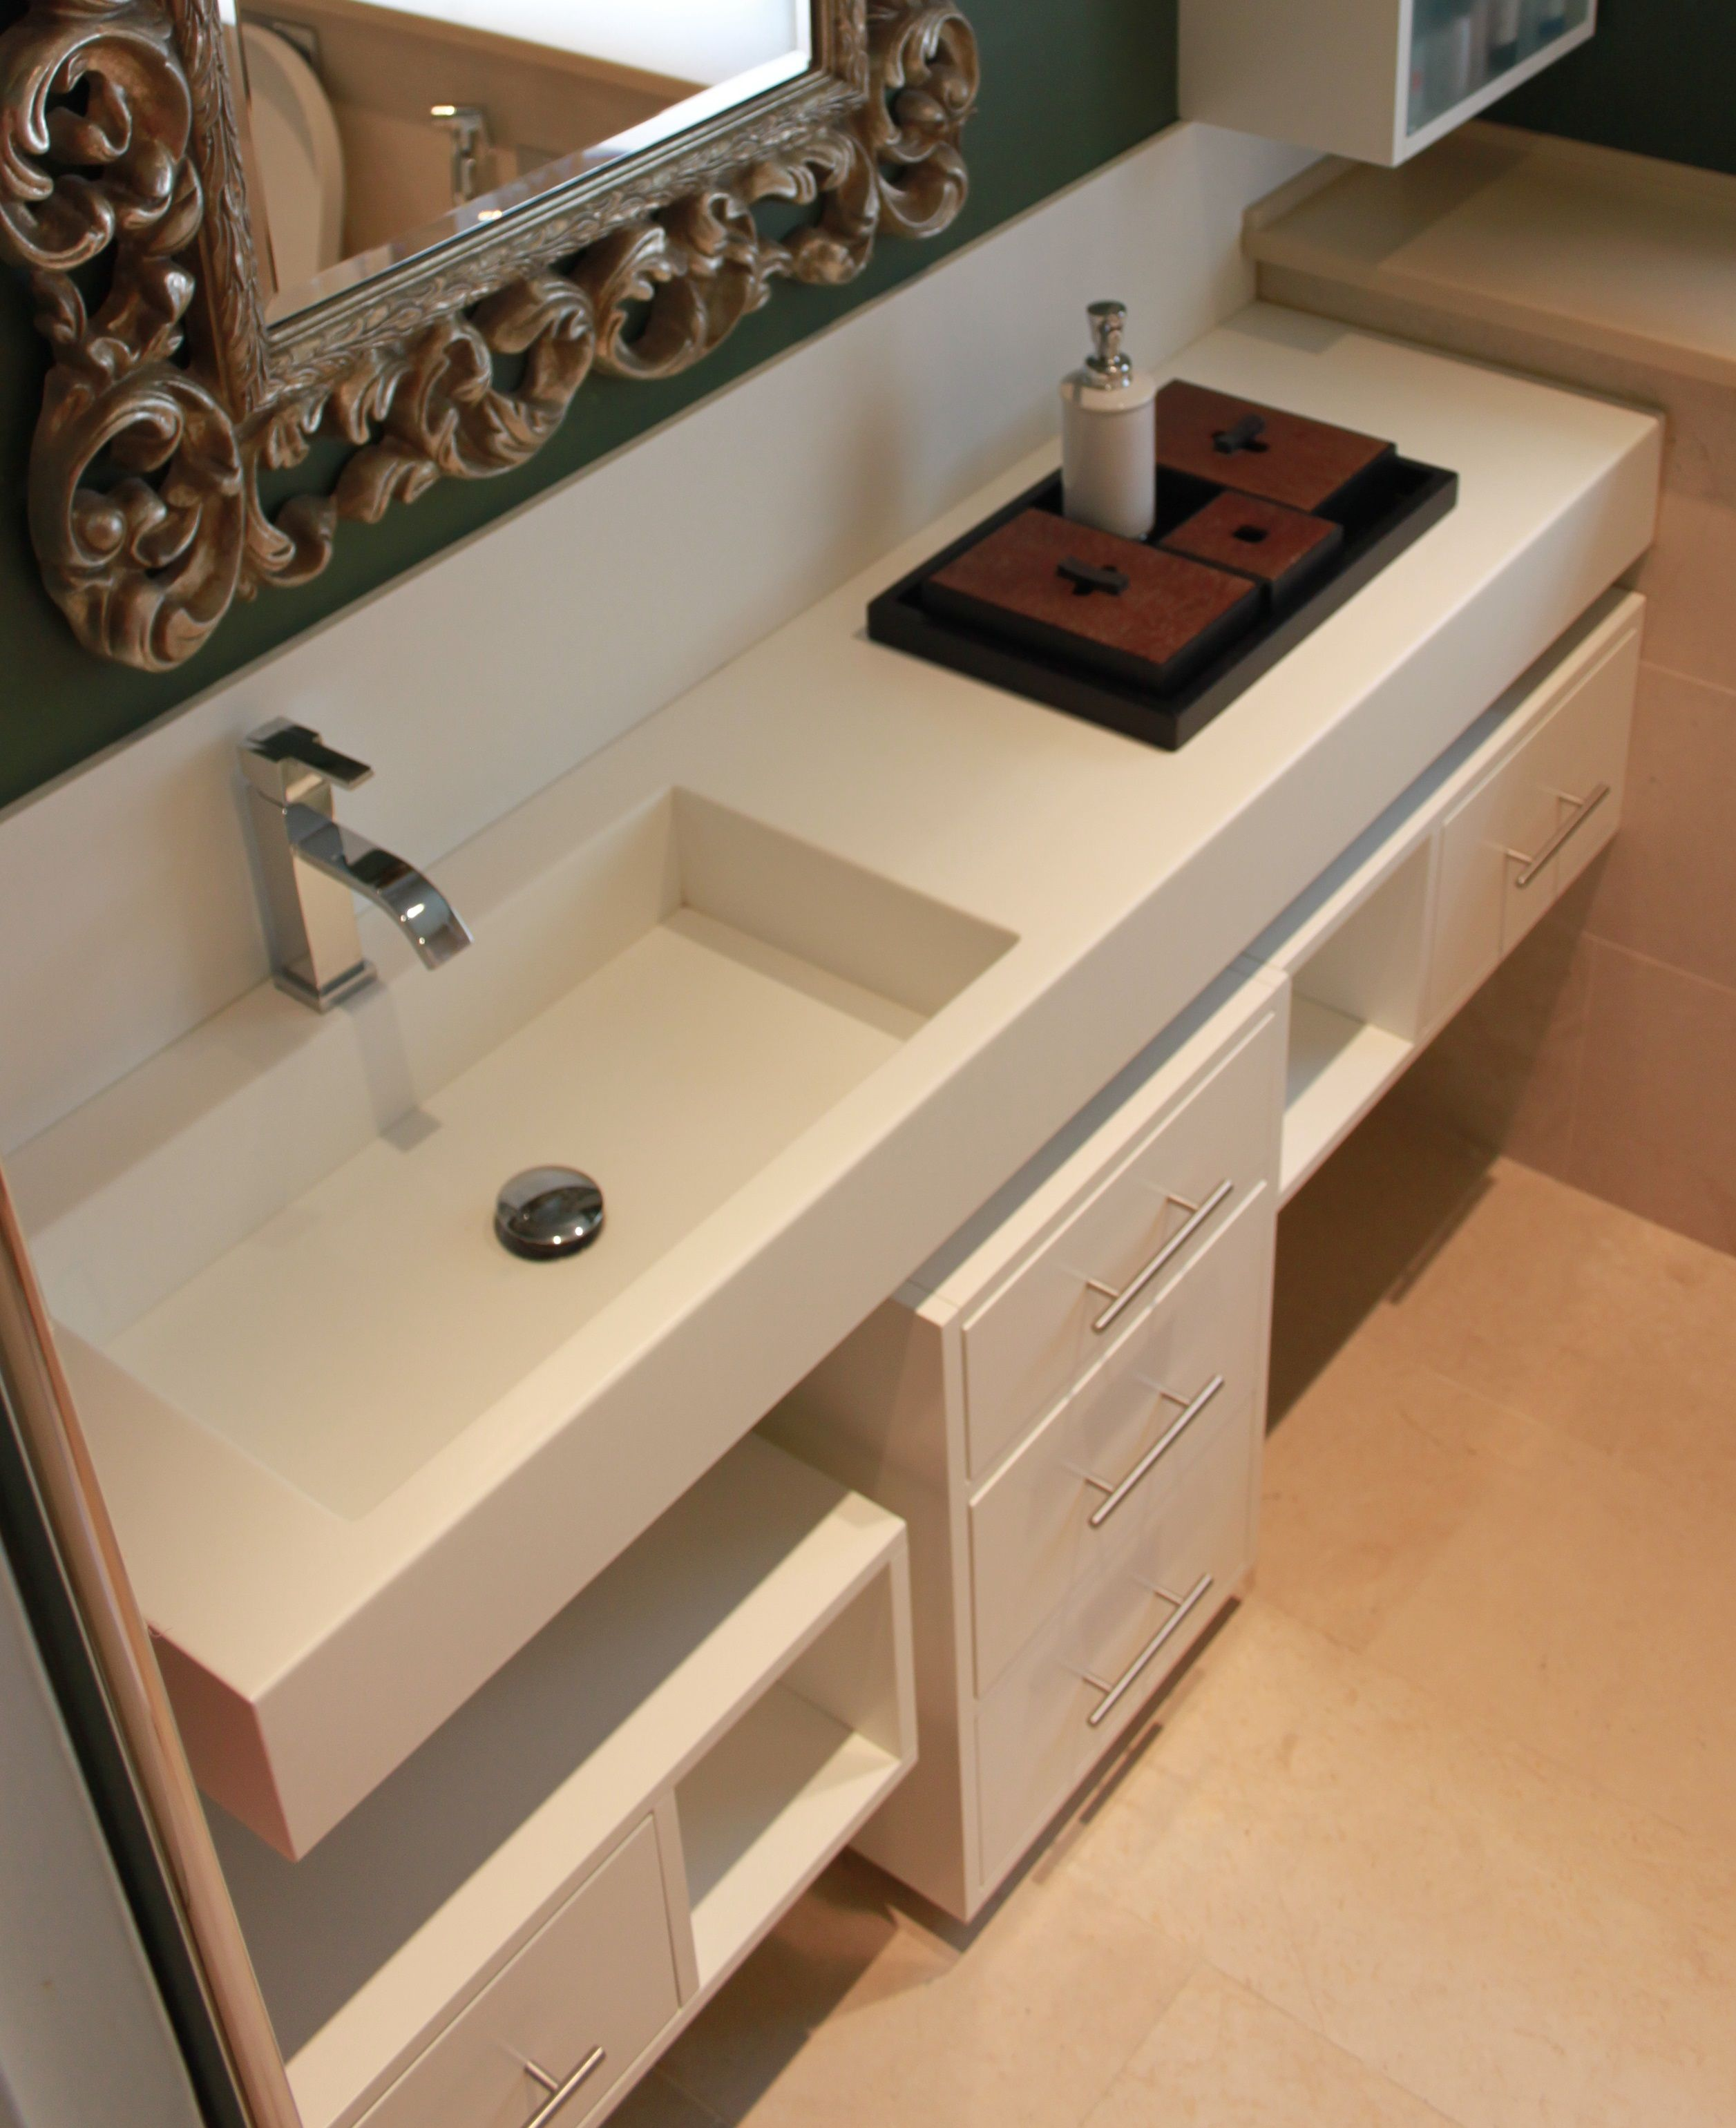 Low cabinet in mdf white matt finishing and top in Corian solid ...